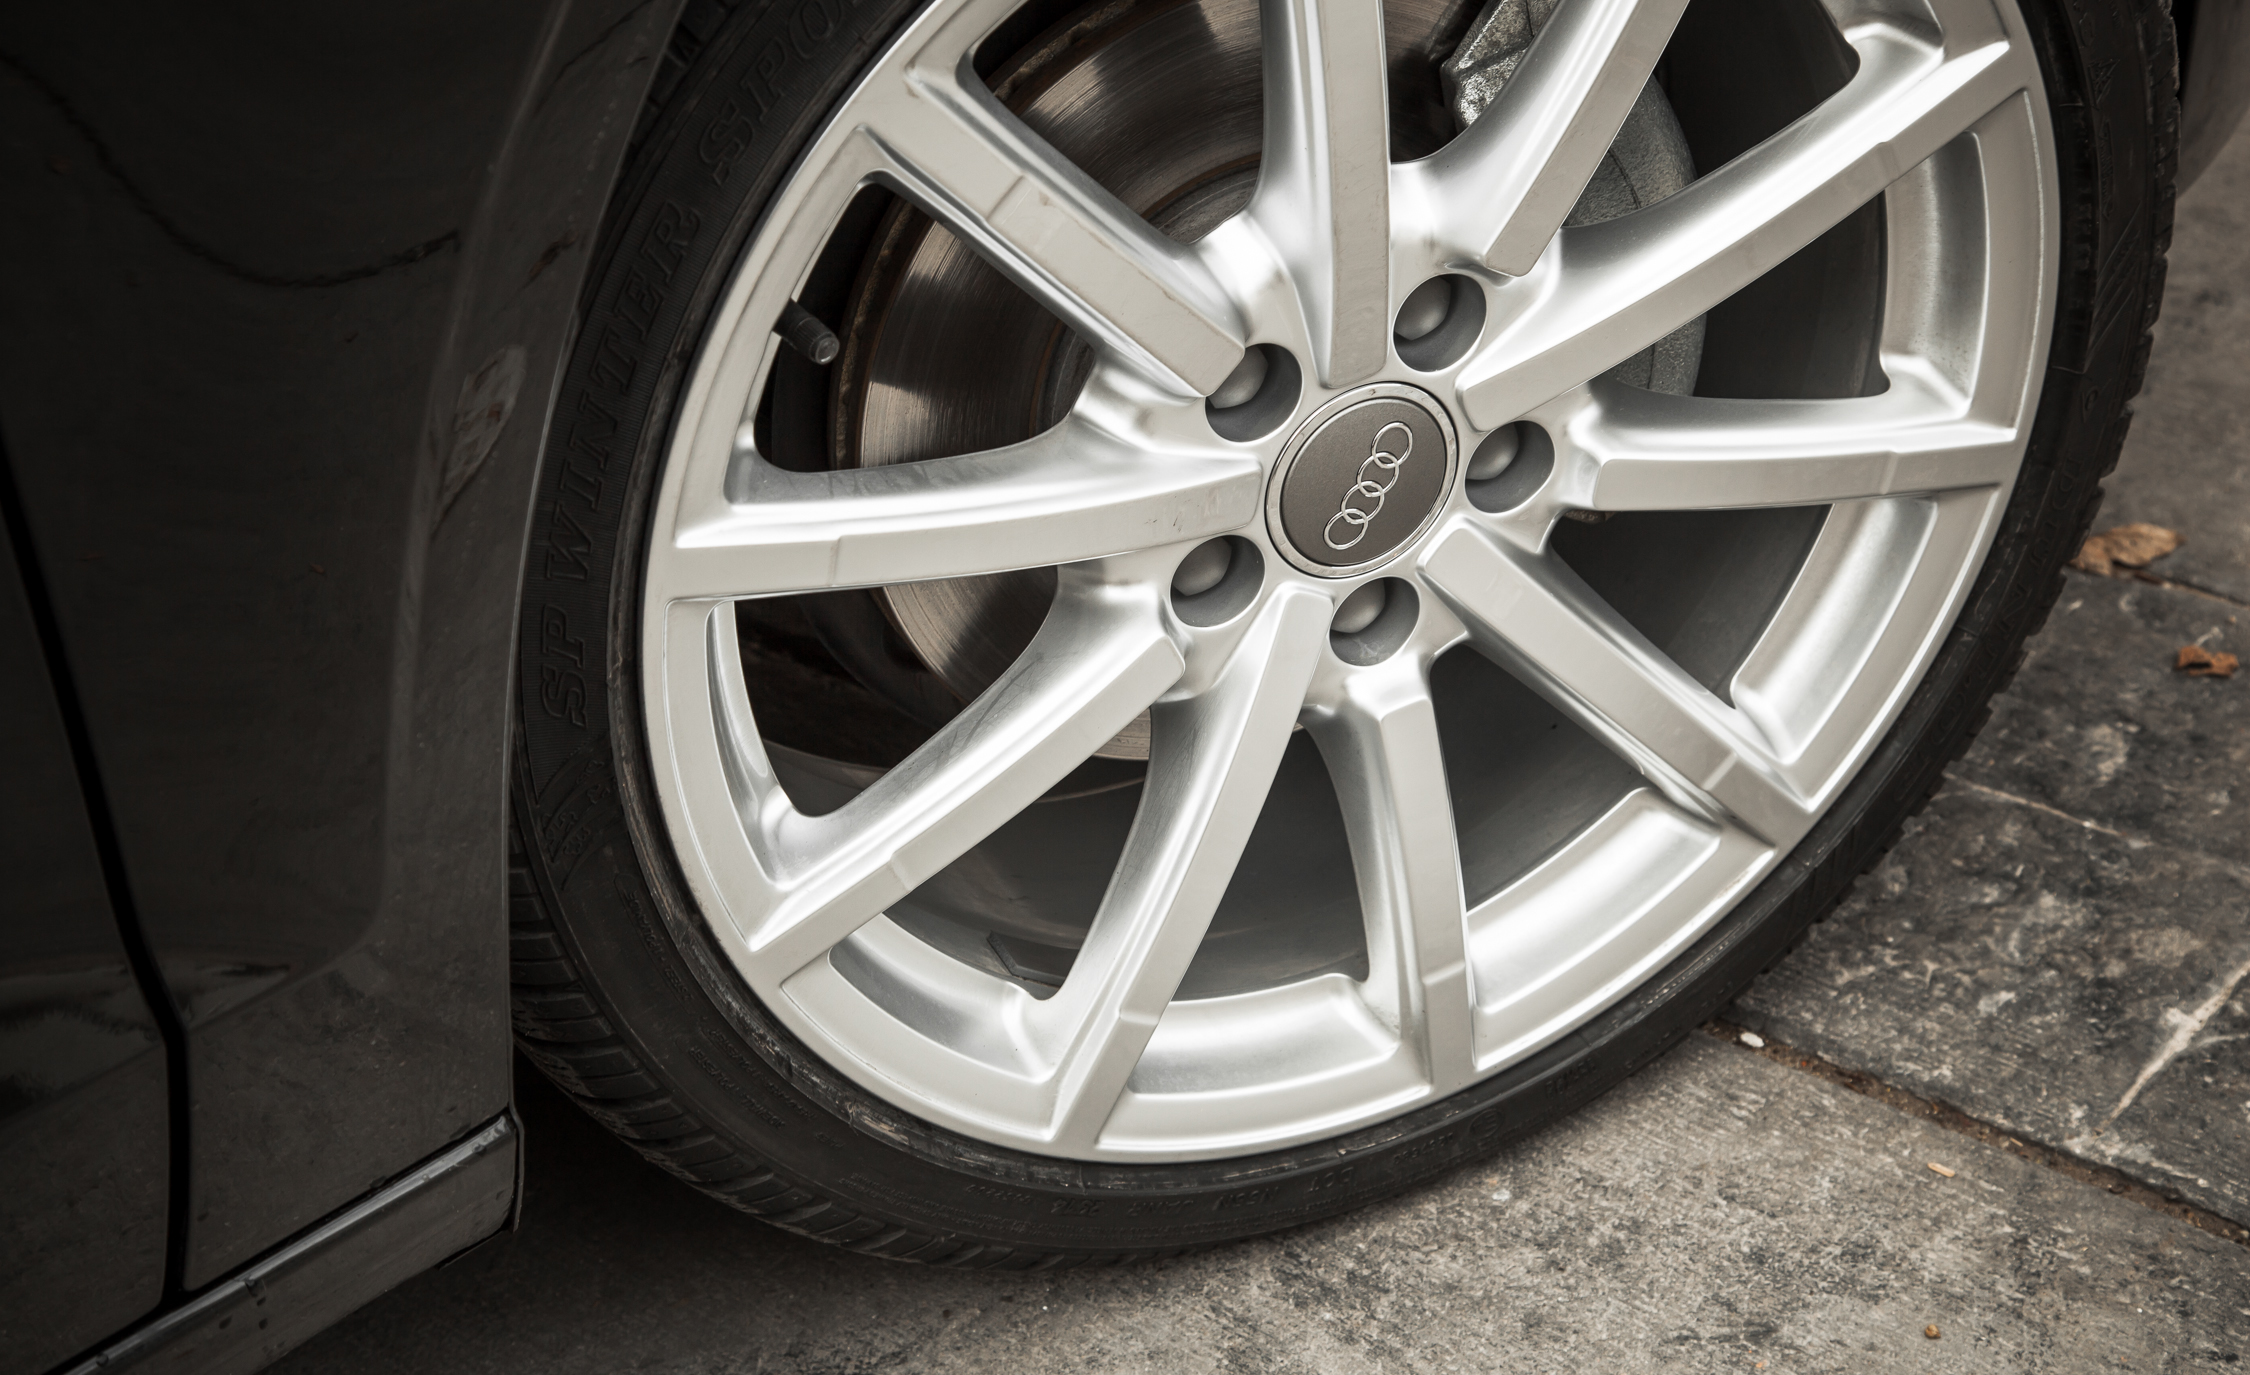 2015 Audi A3 TDI Exterior View Wheel Trim (Photo 31 of 50)